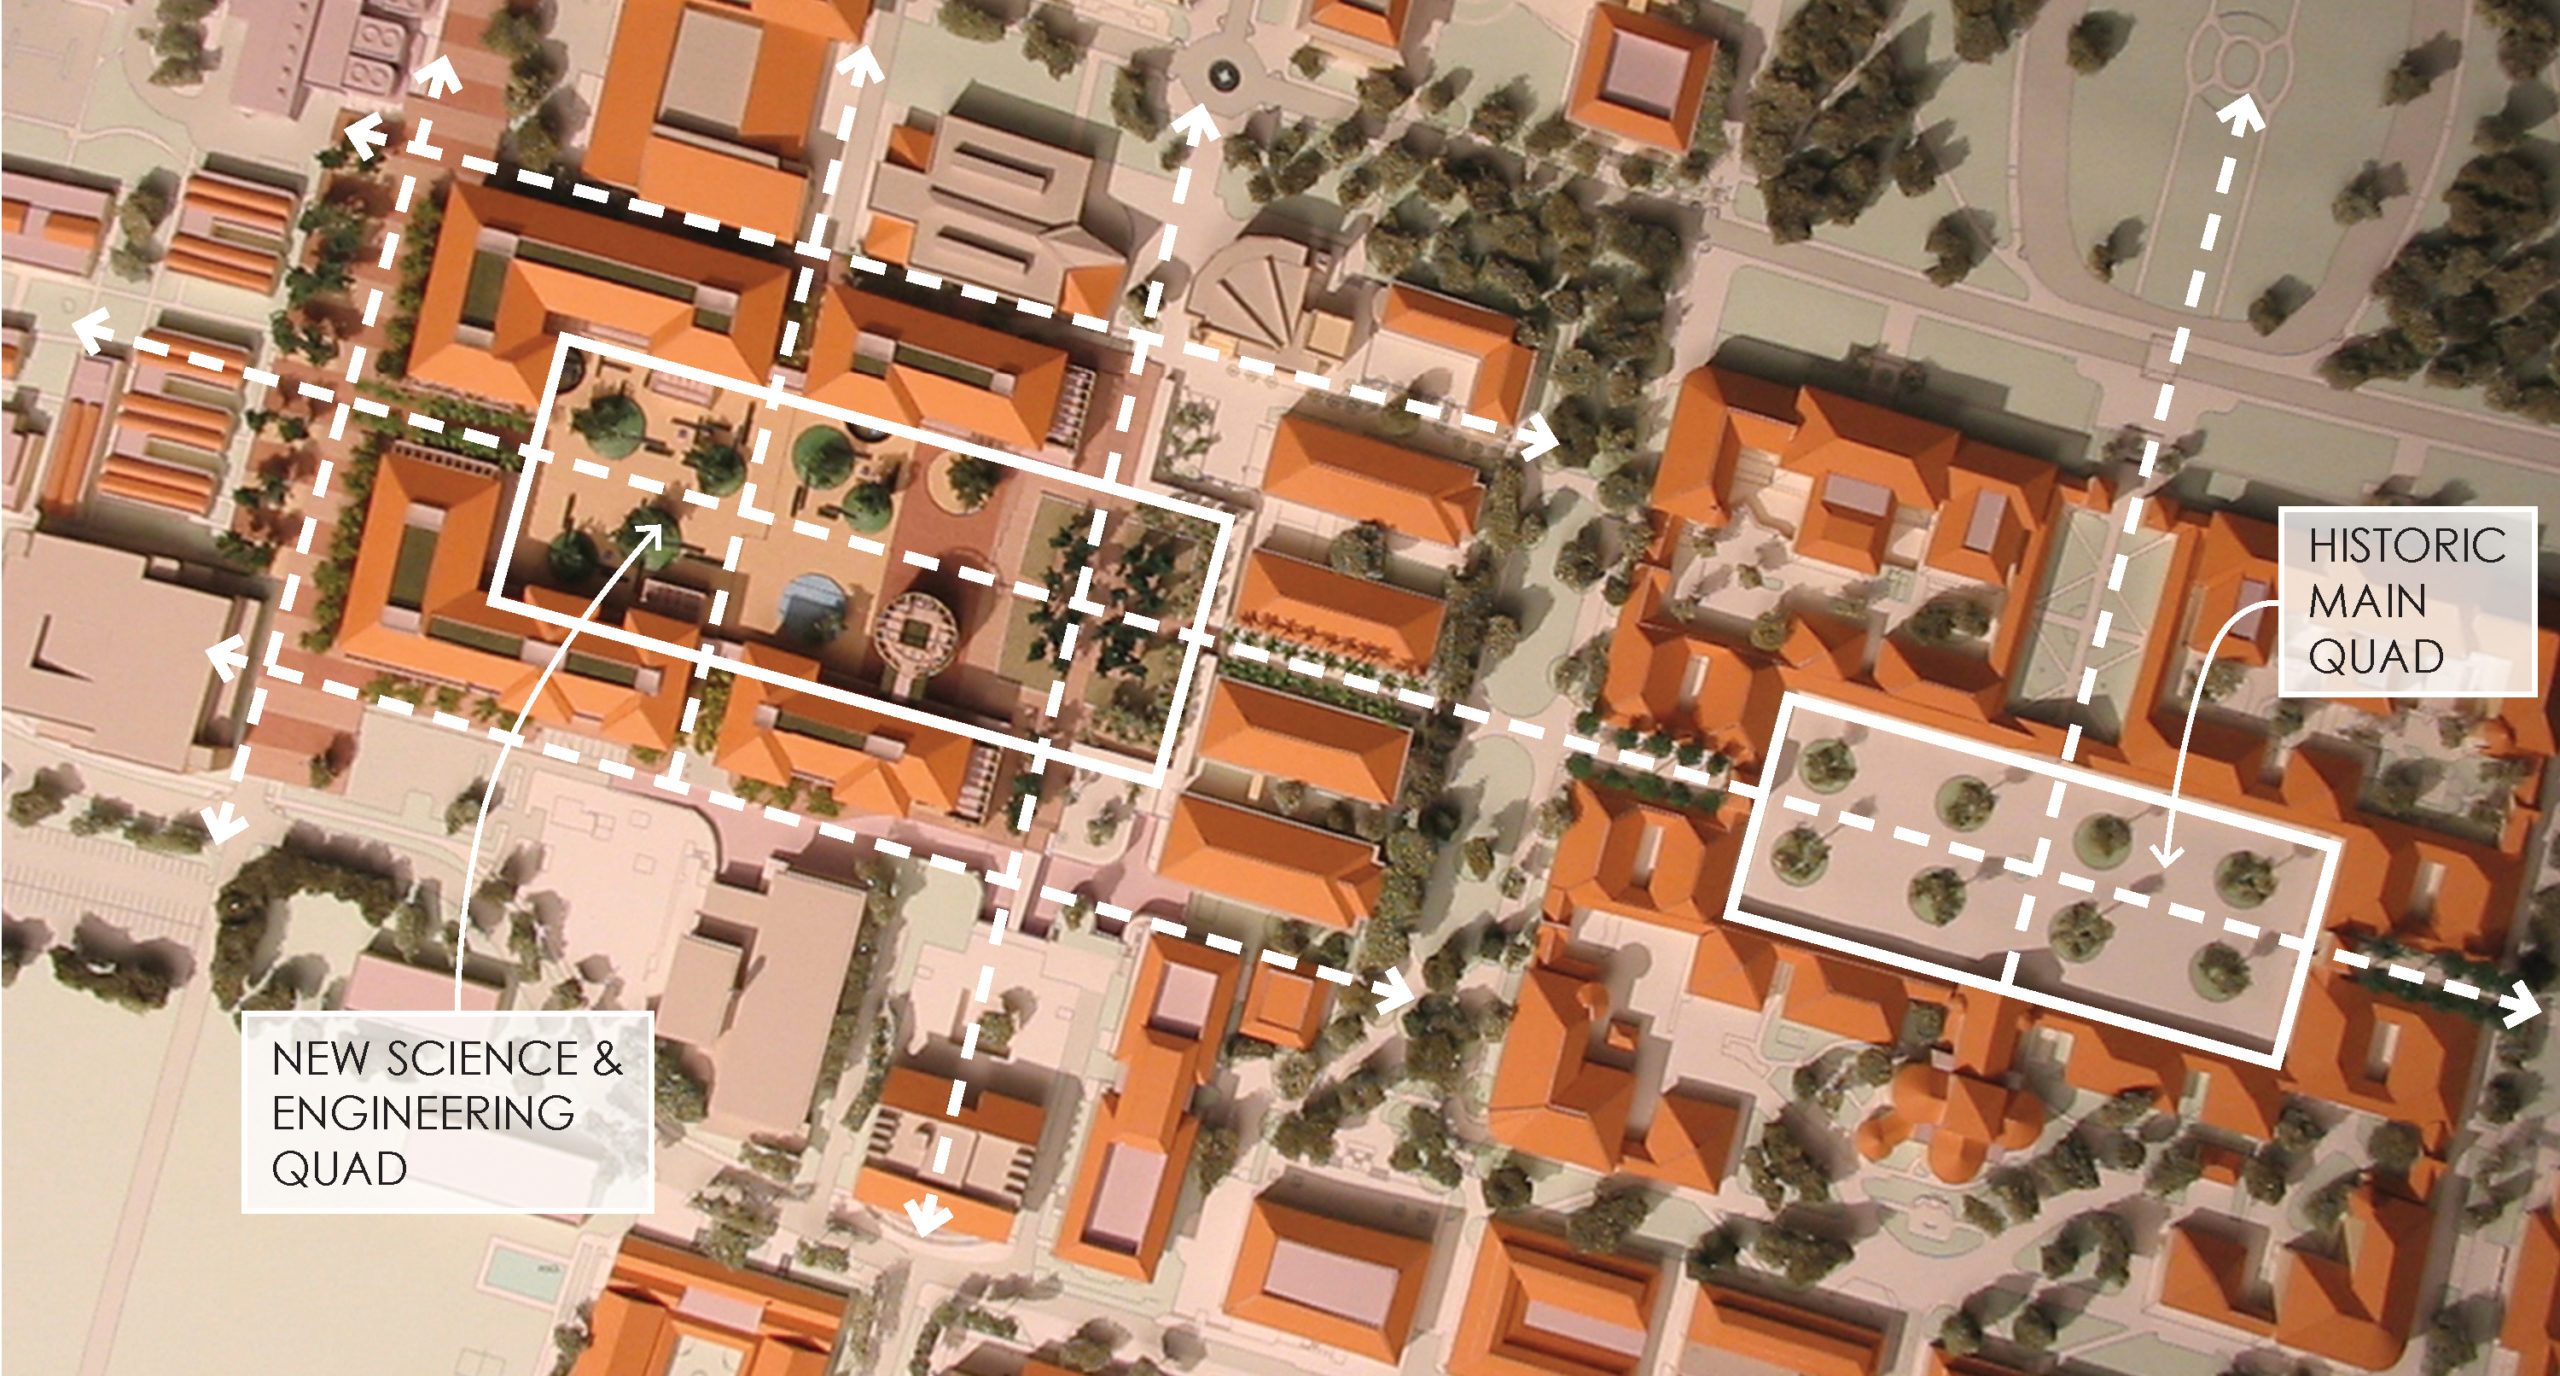 Science and Engineering Quad Master Plan and Design Guidelines at Stanford University / image 2